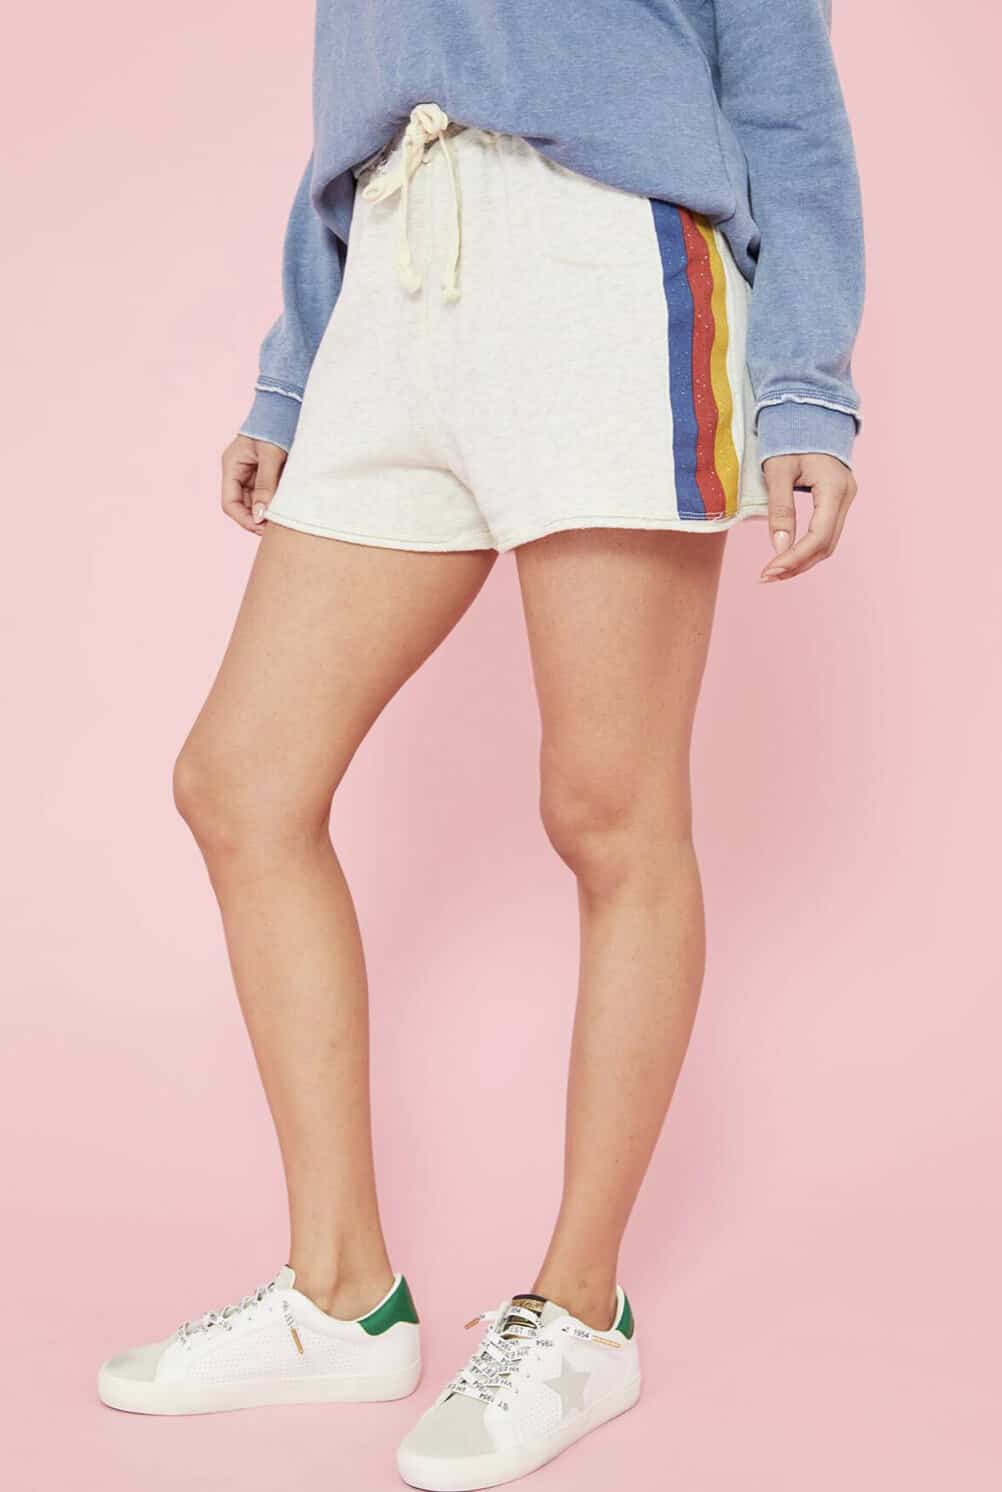 I have a pair of really awful sweat shorts that everyone in my family hates, so these would be a serious upgrade. I'd wear them all summer long as my lounge wear, bathing suit cover up, and errand running foundational piece.  -